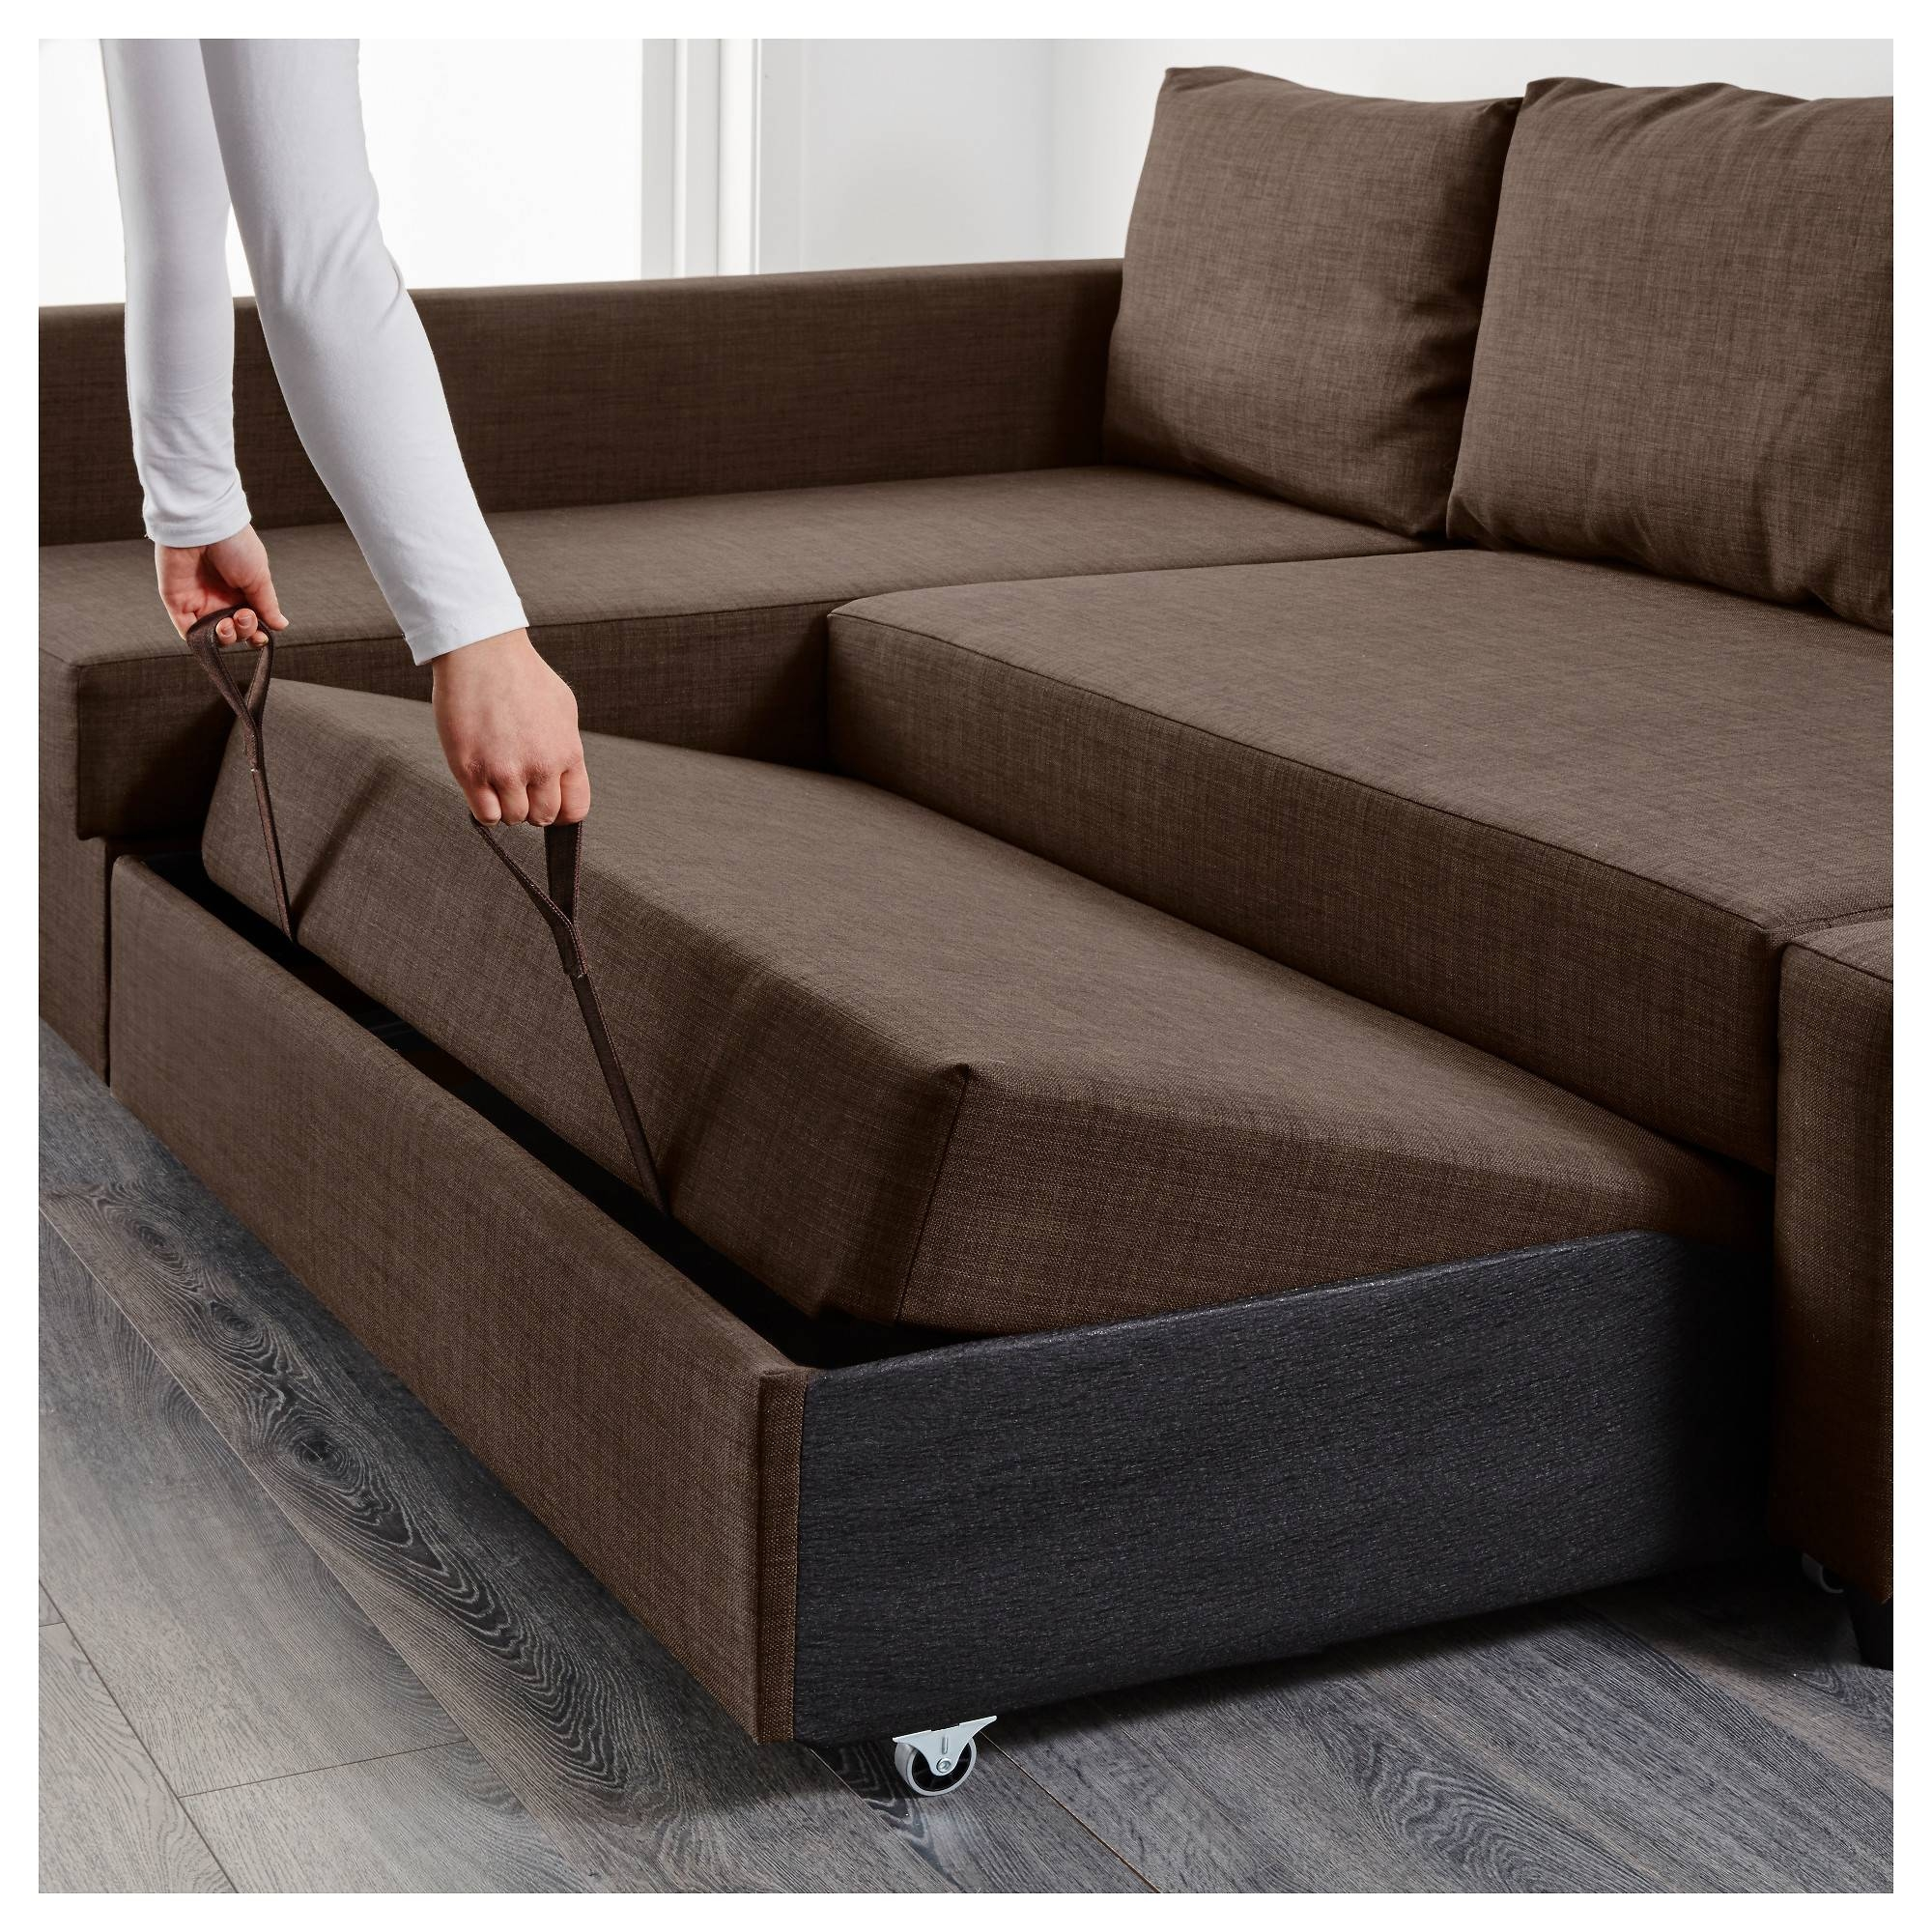 Furniture: Impressive Ikea Sofa Beds For Your Living Room — Mabas4 throughout Ikea Single Sofa Beds (Image 12 of 30)